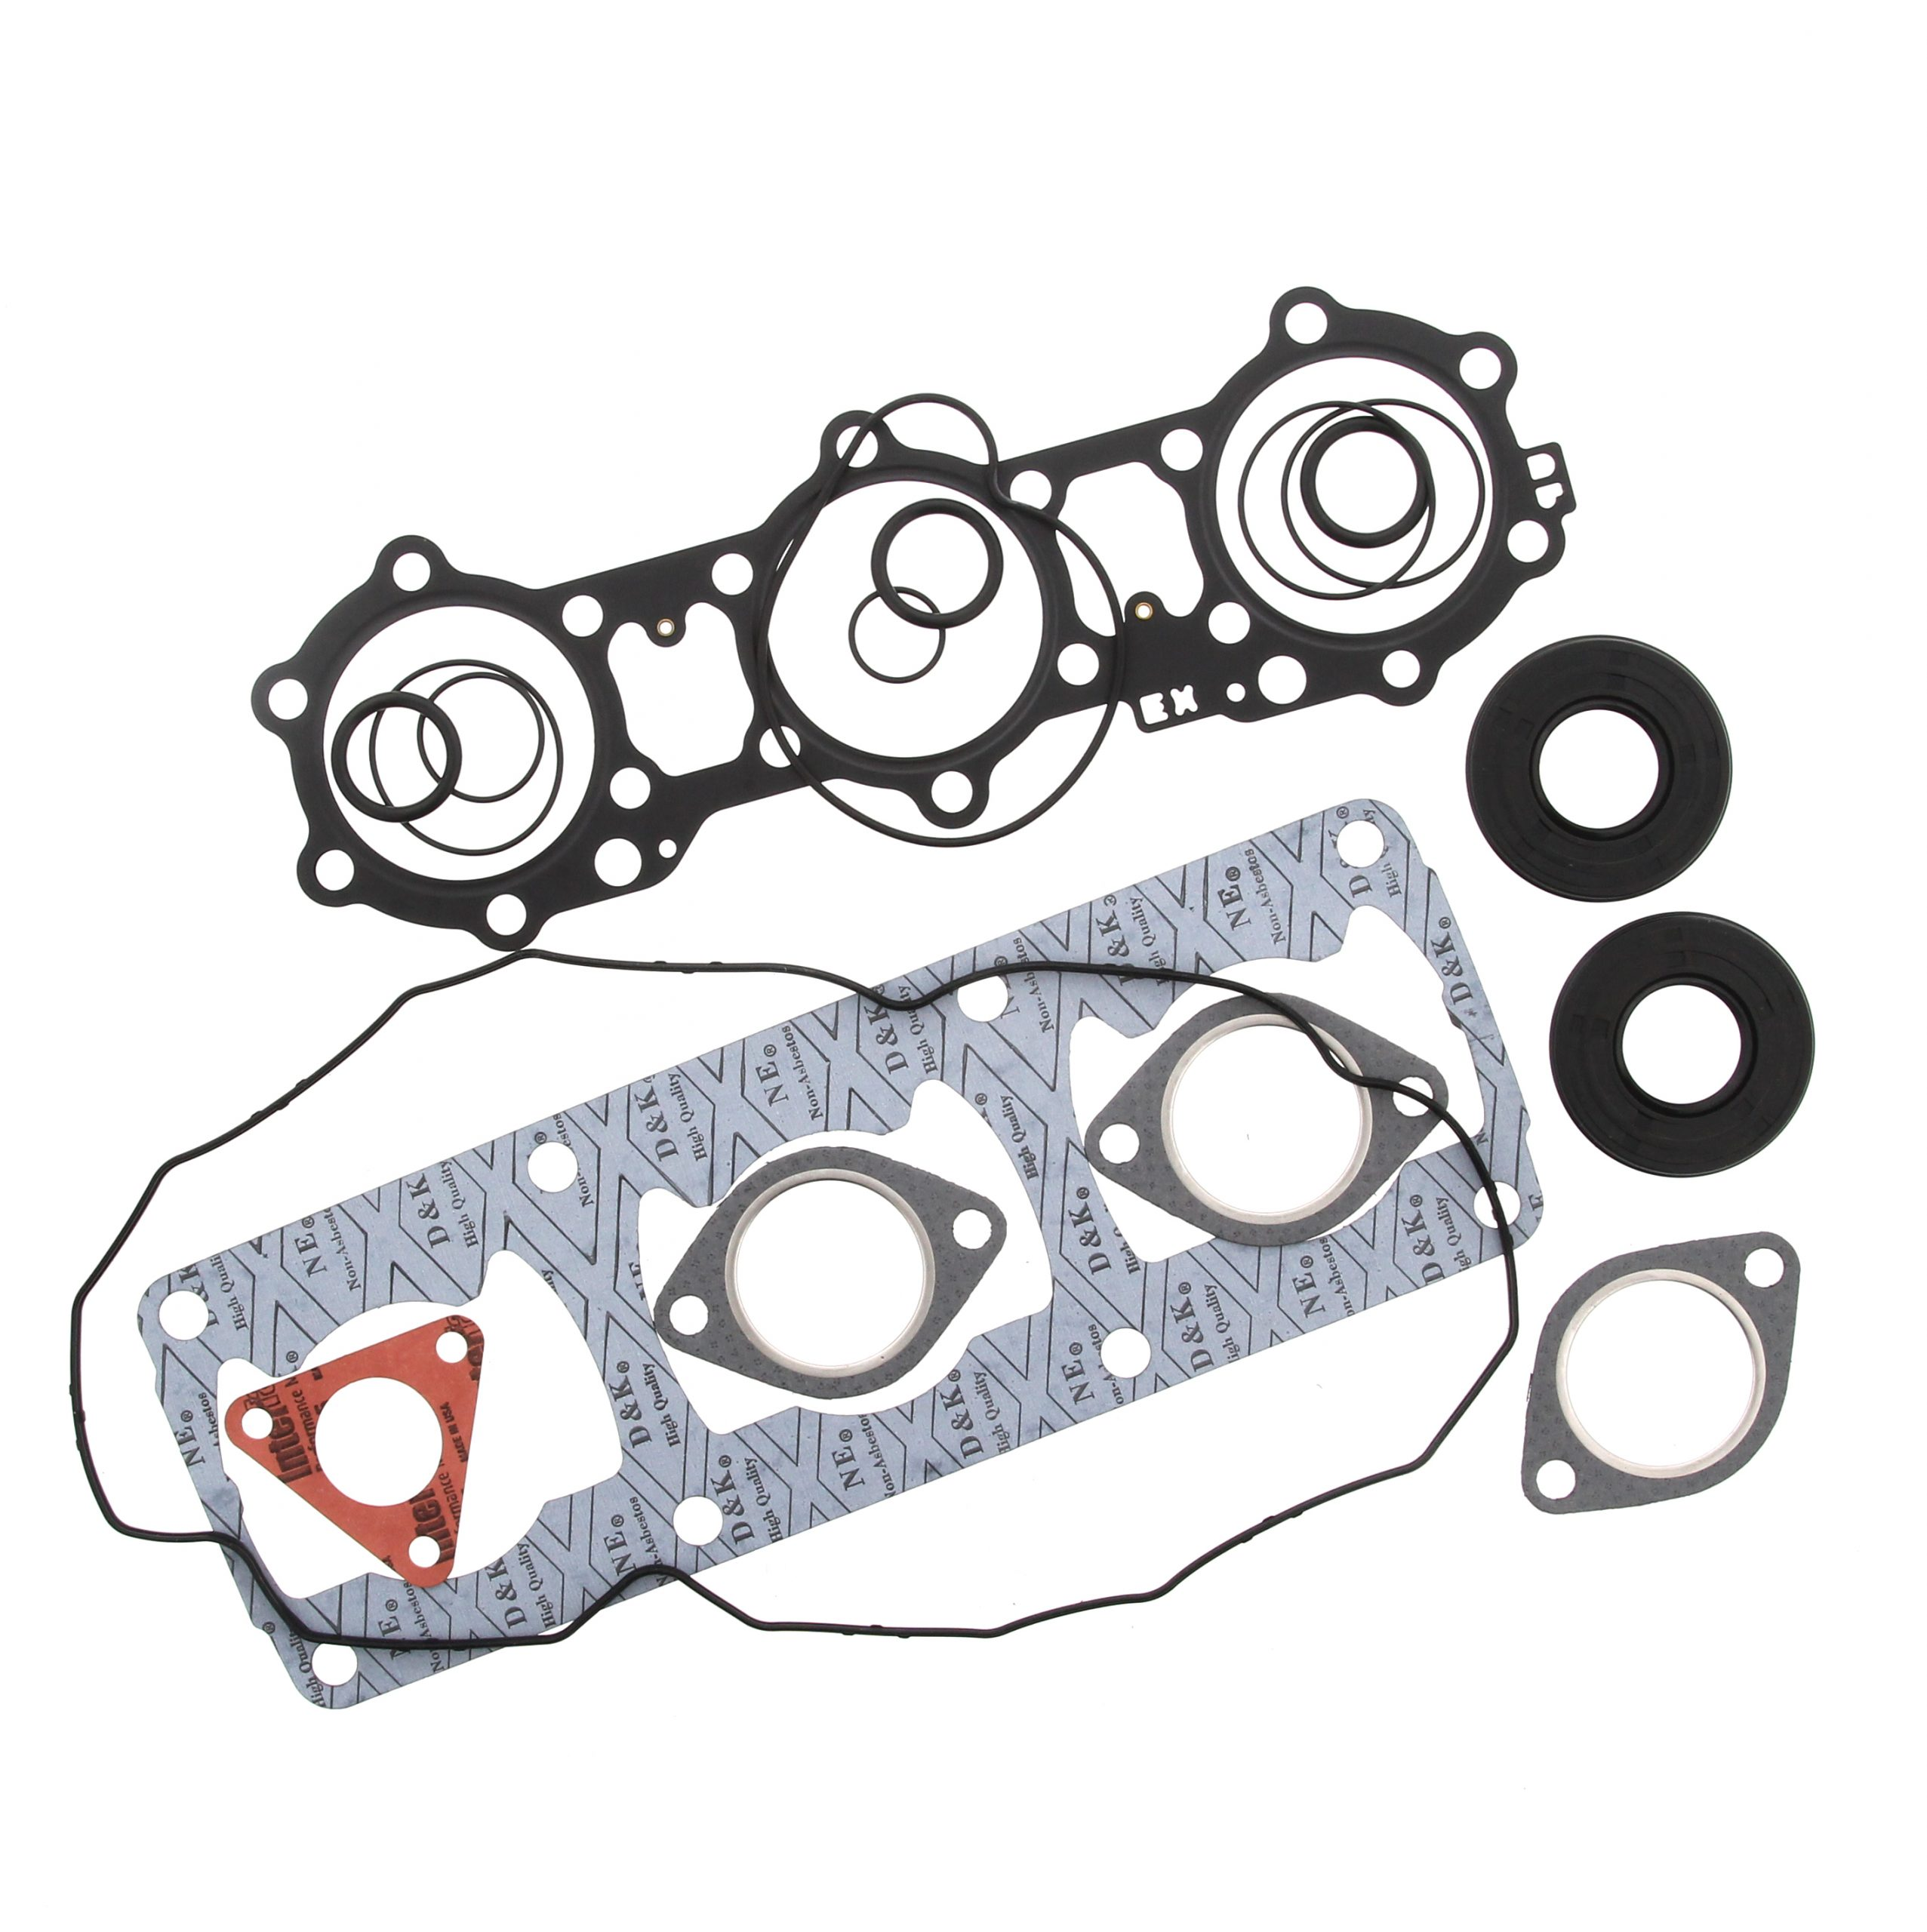 Complete Gasket Kit fits Polaris XC 600 LC//2 1998-2000 by Race-Driven